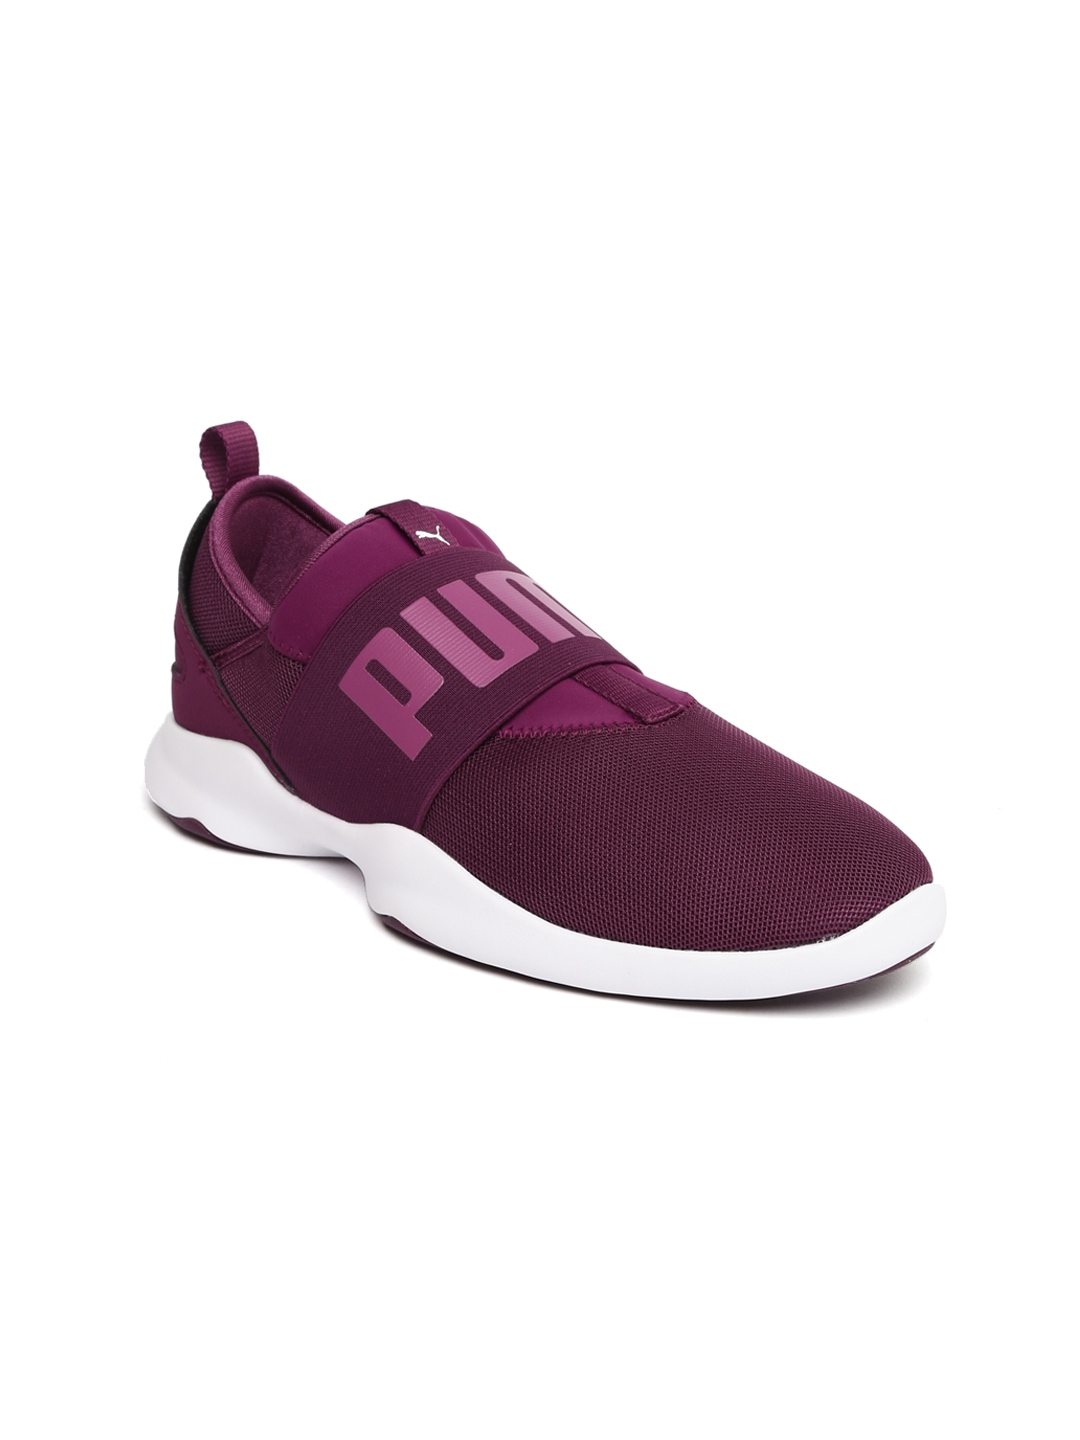 Puma Sneakers Shoes Price In India